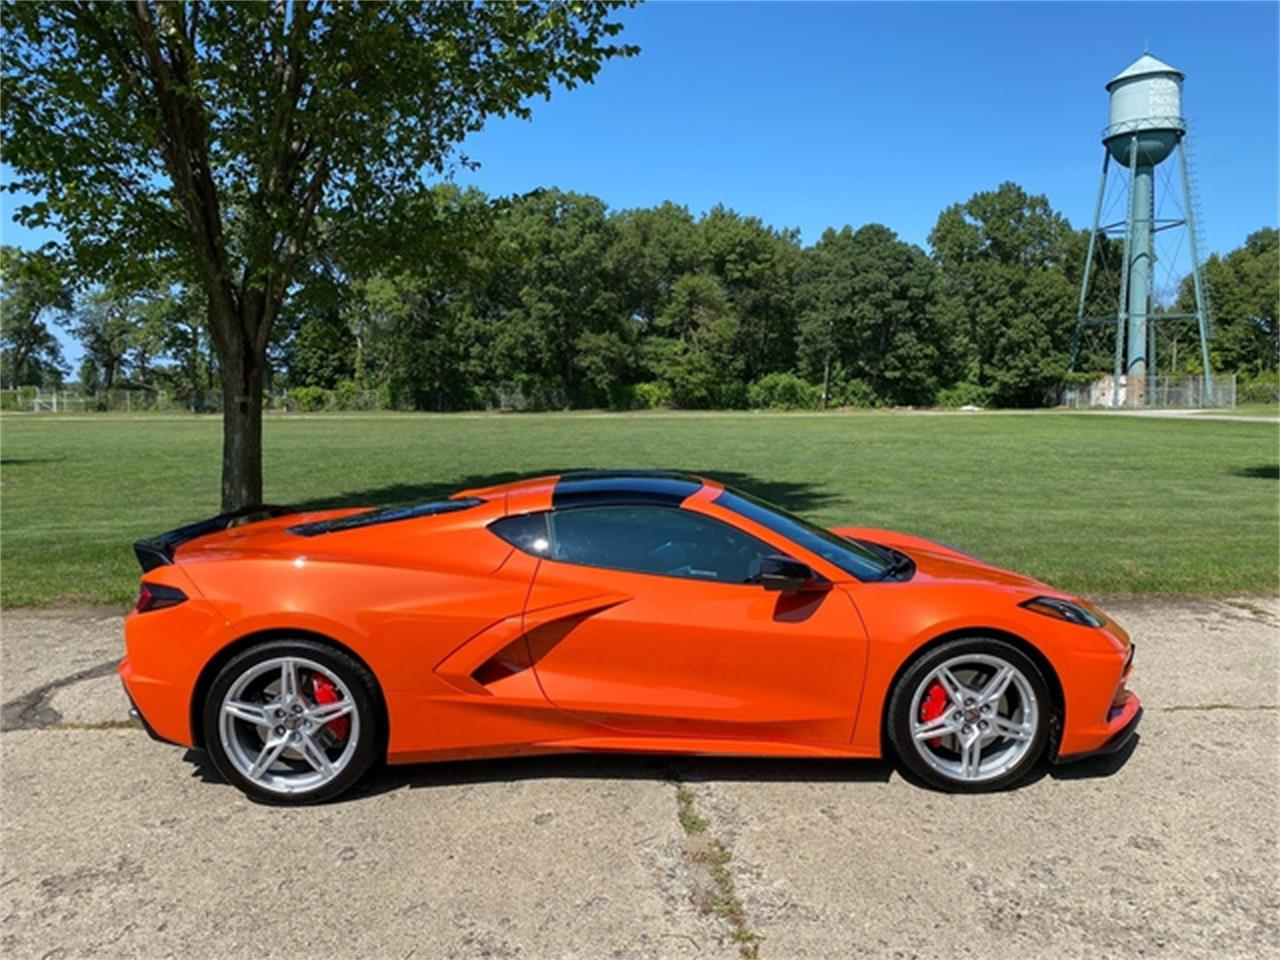 2020 Chevrolet Corvette (CC-1389773) for sale in Shelby Township, Michigan